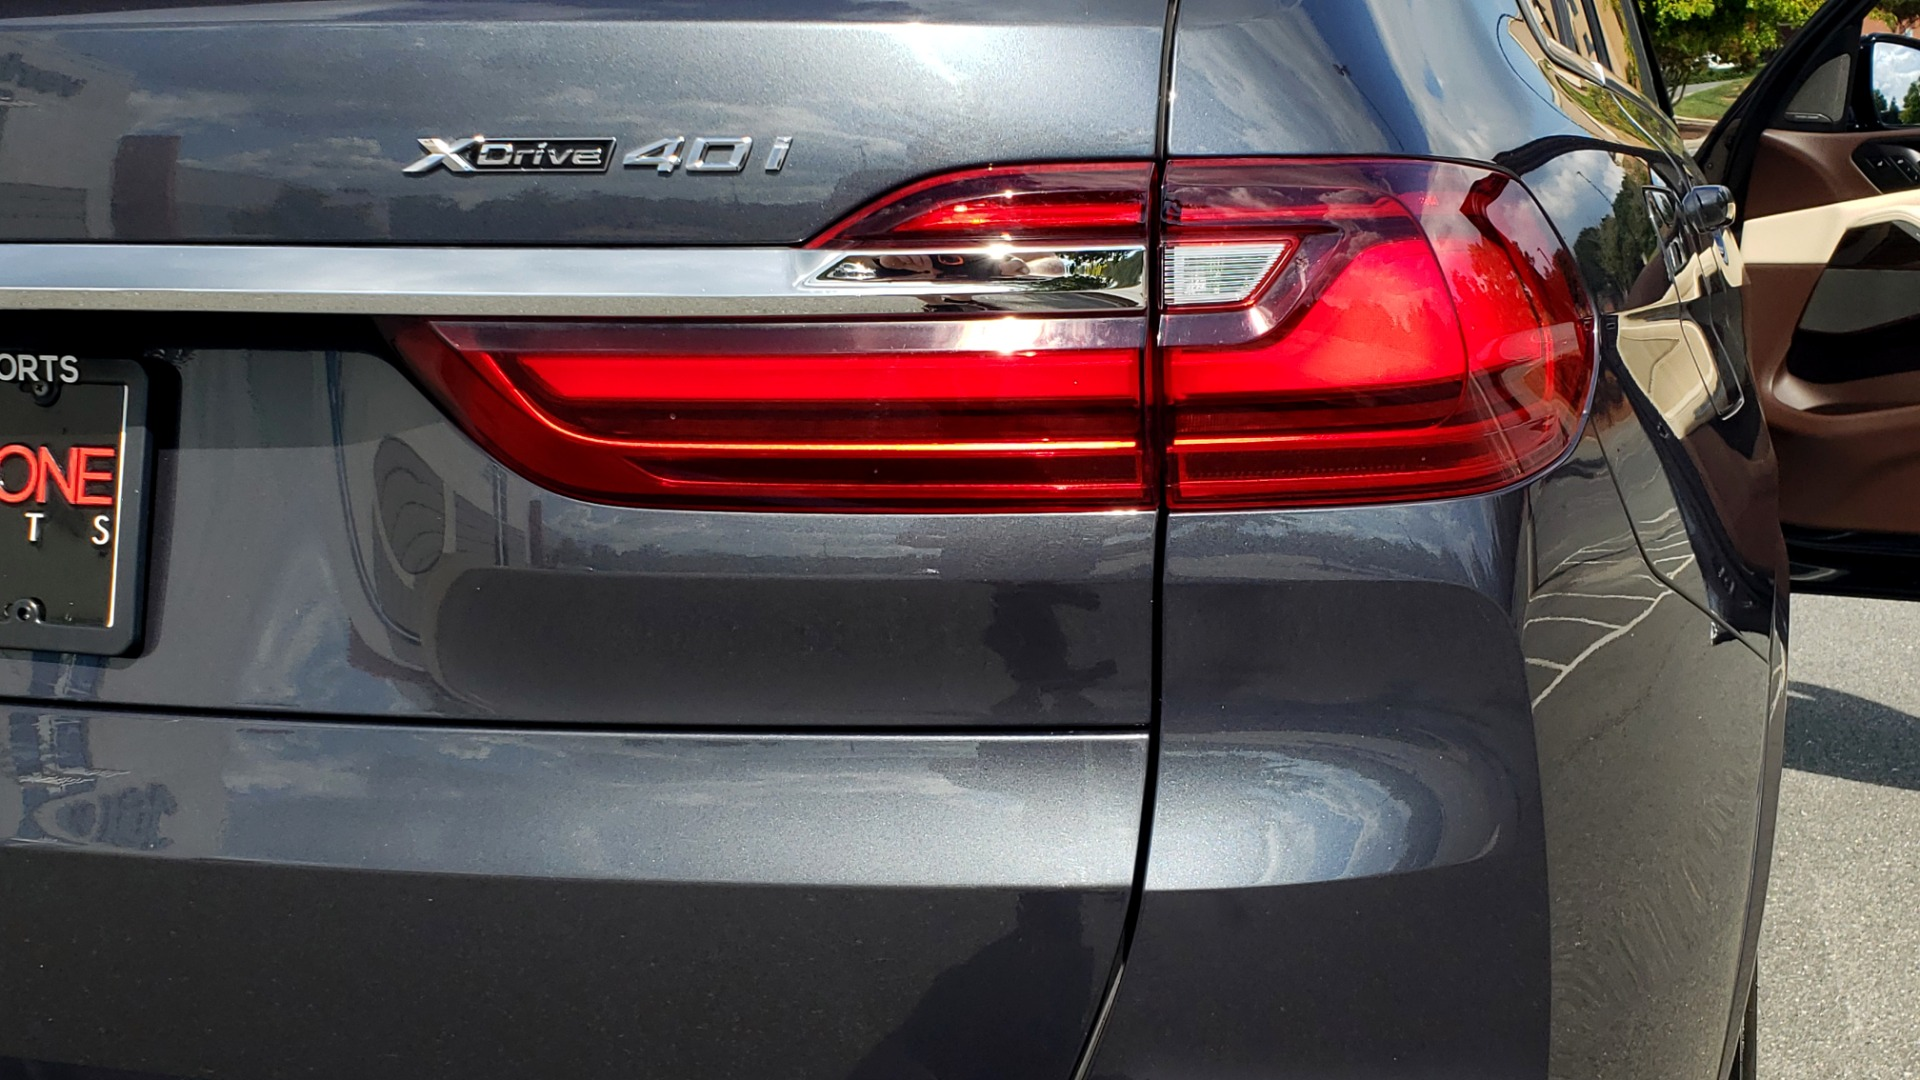 Used 2019 BMW X7 XDRIVE40I PREMIUM / LUXURY / COLD WEATHER / PARK ASST / PANORAMIC SKY / TOW for sale $75,999 at Formula Imports in Charlotte NC 28227 37